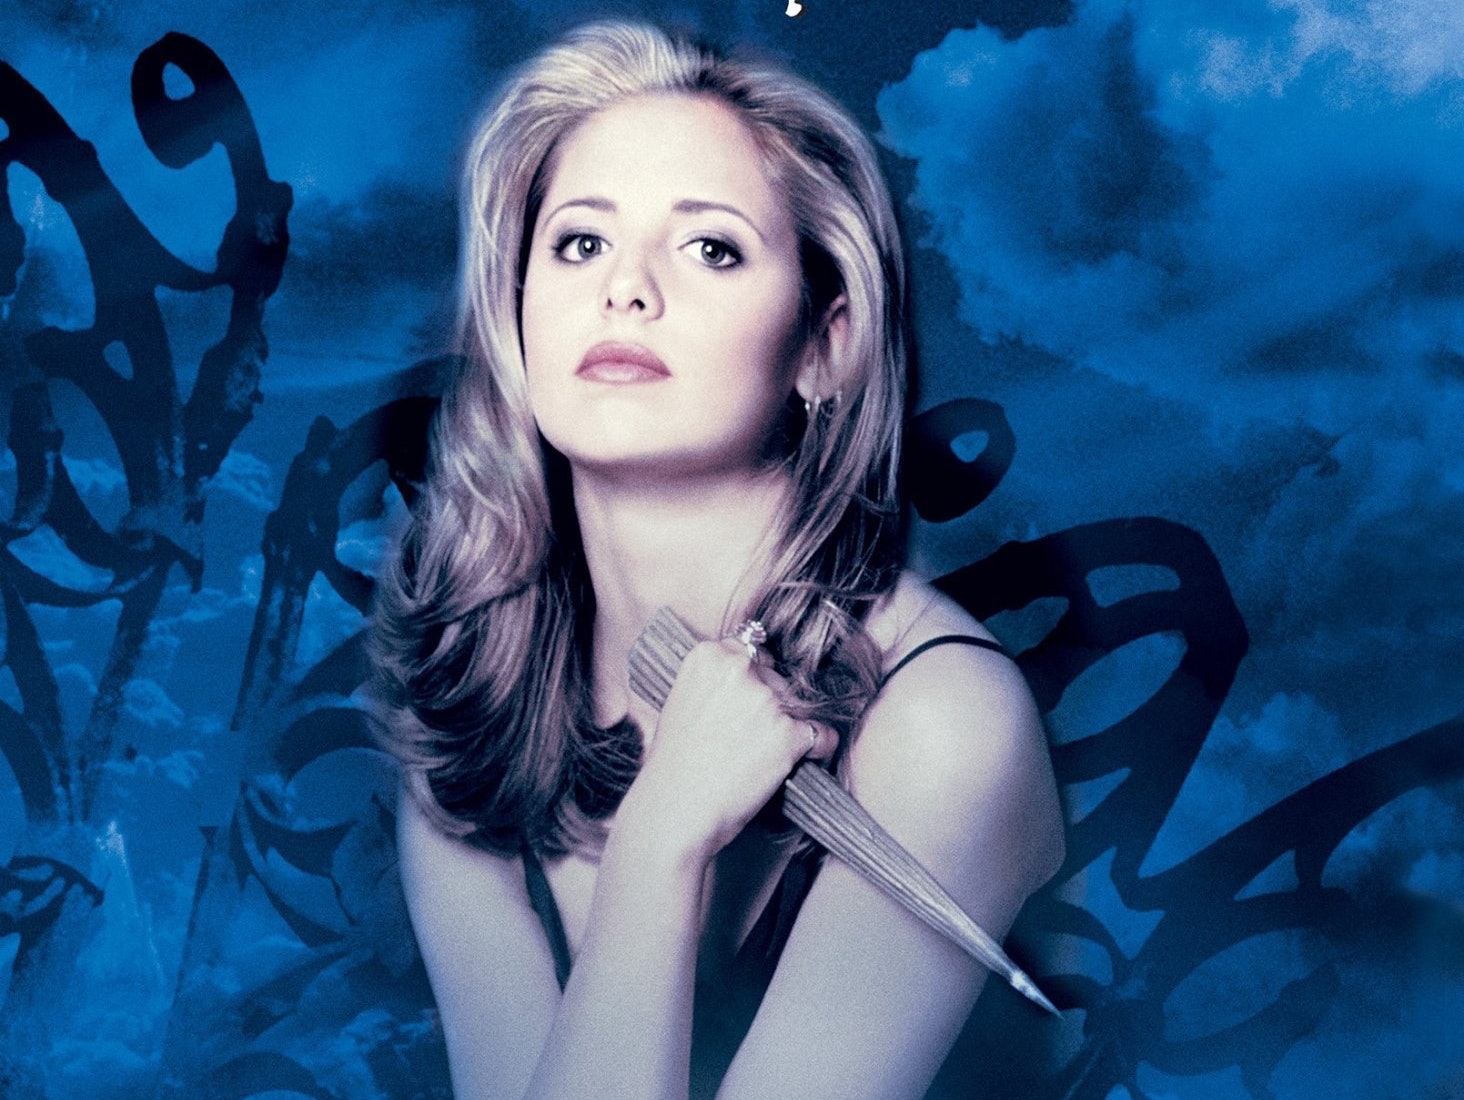 5 New Things We Learned About 'Buffy' on Its 20th Anniversary